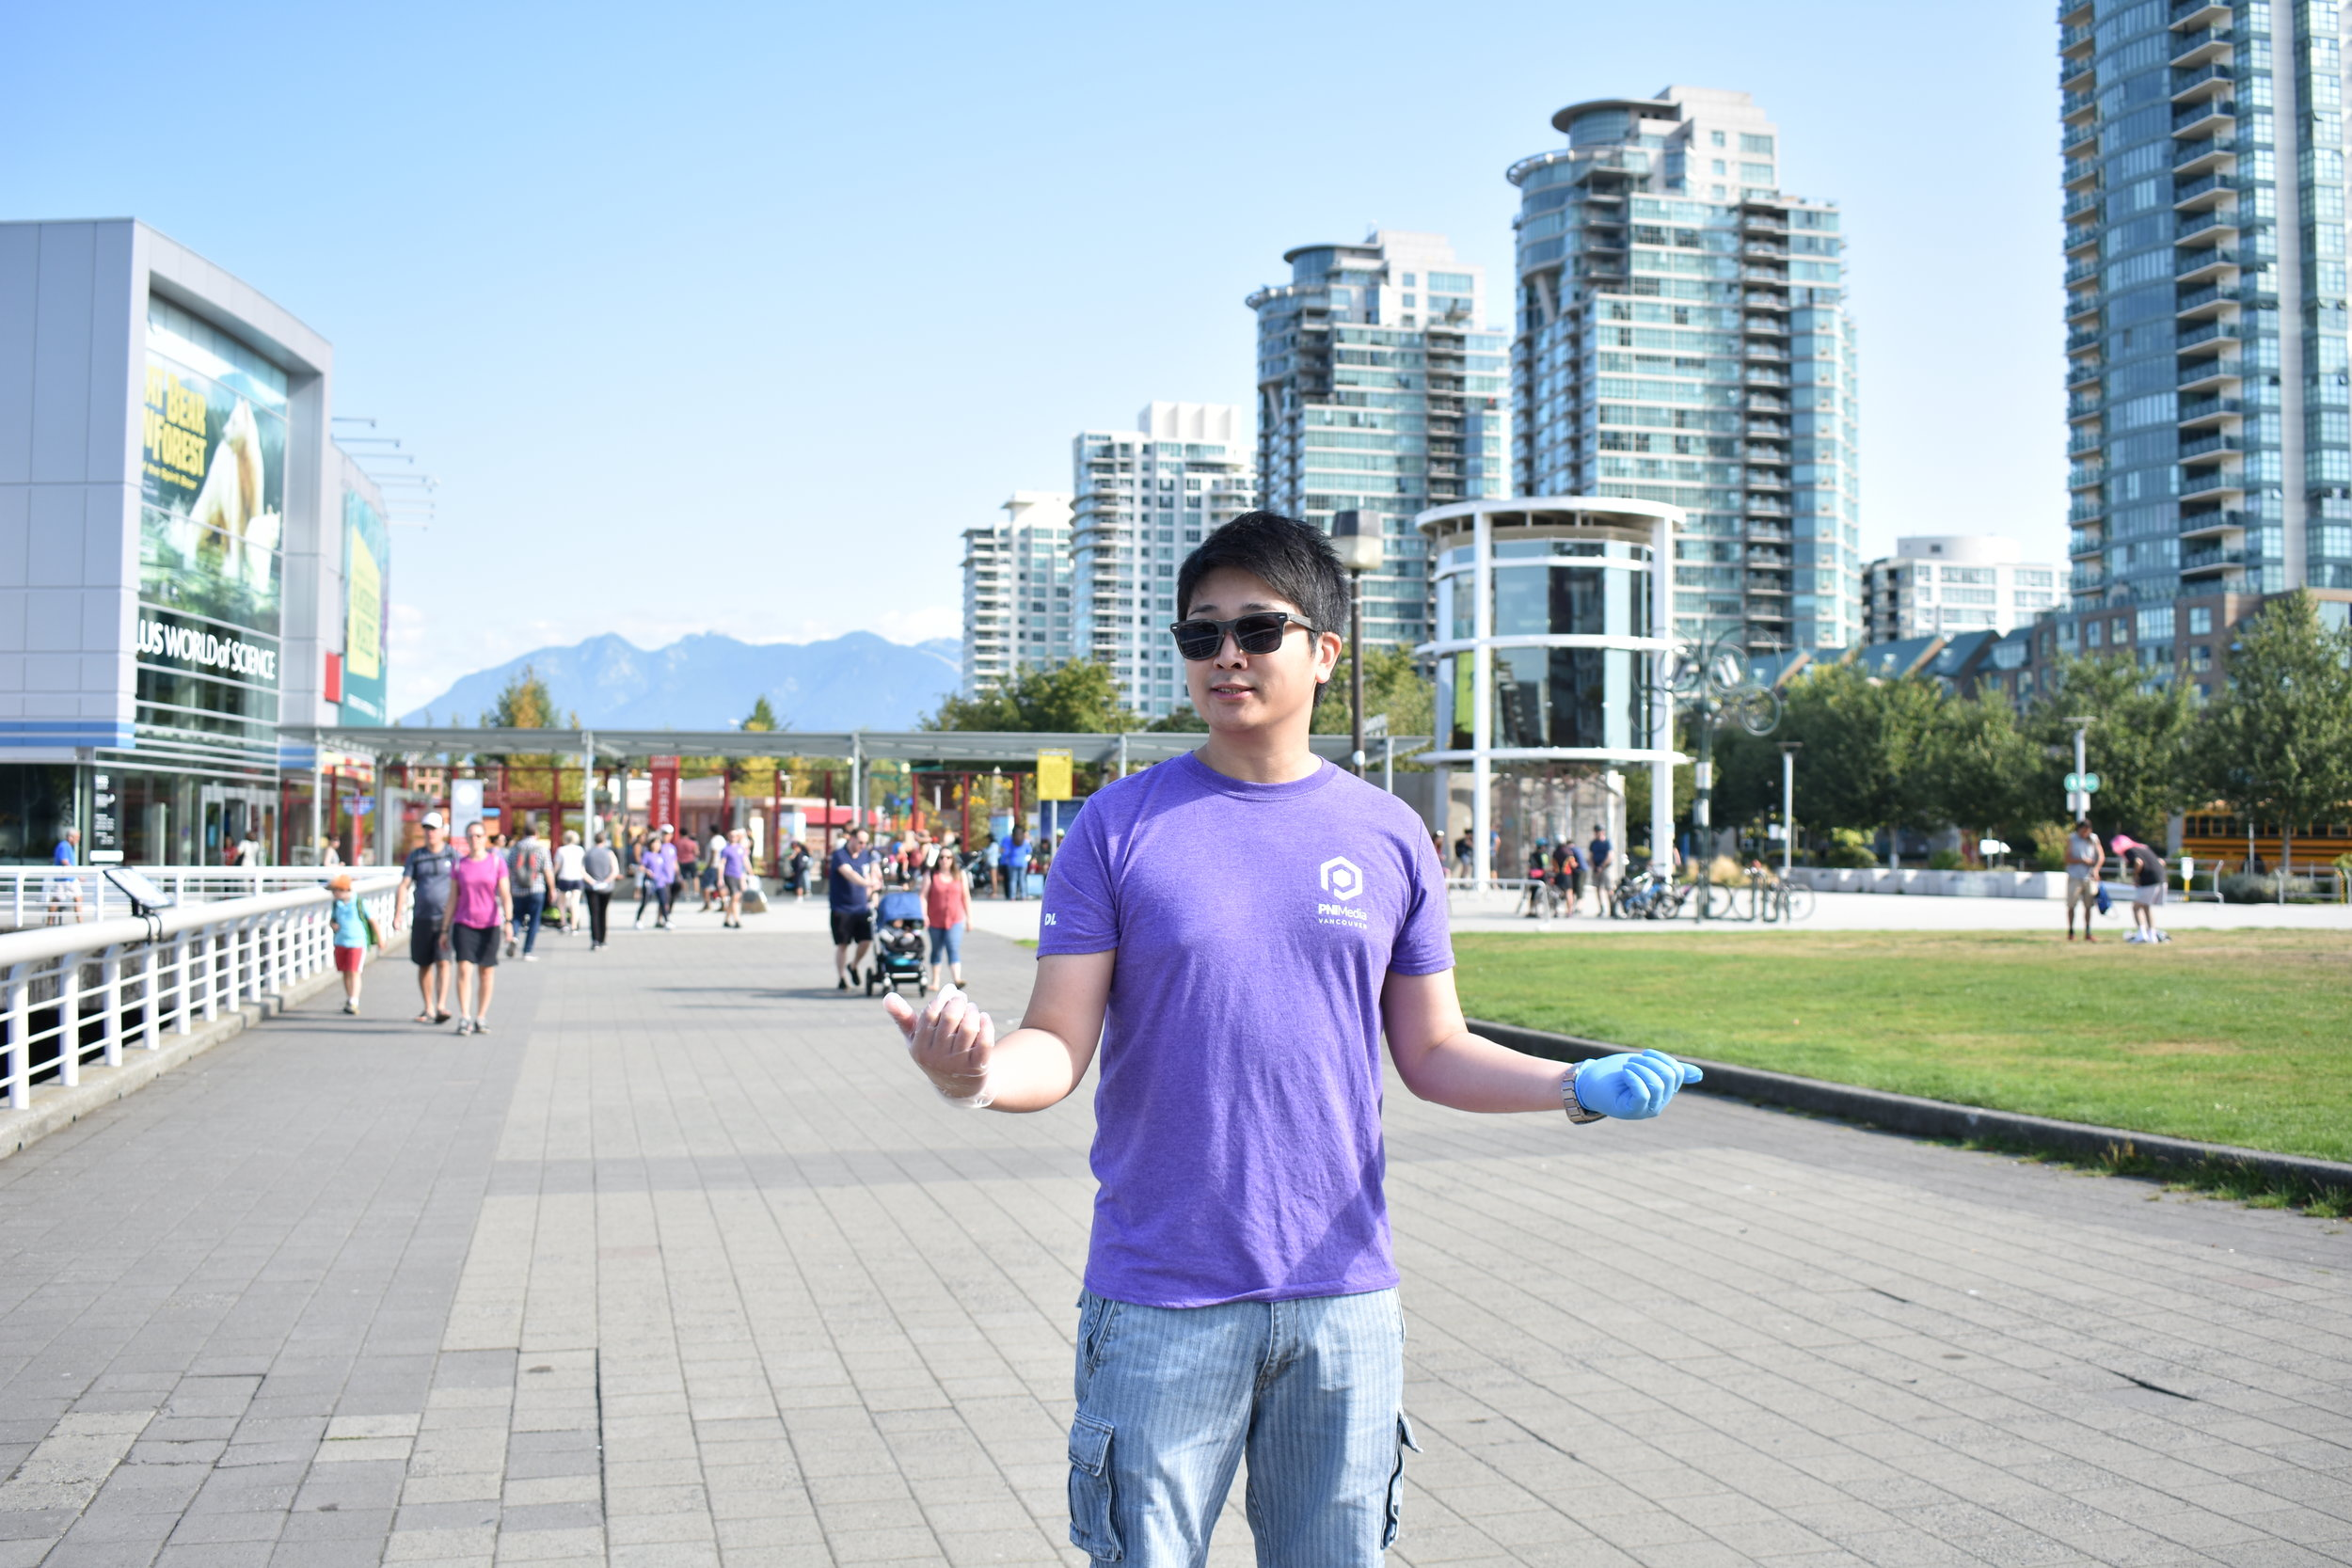 The clean-up took place around False Creek.